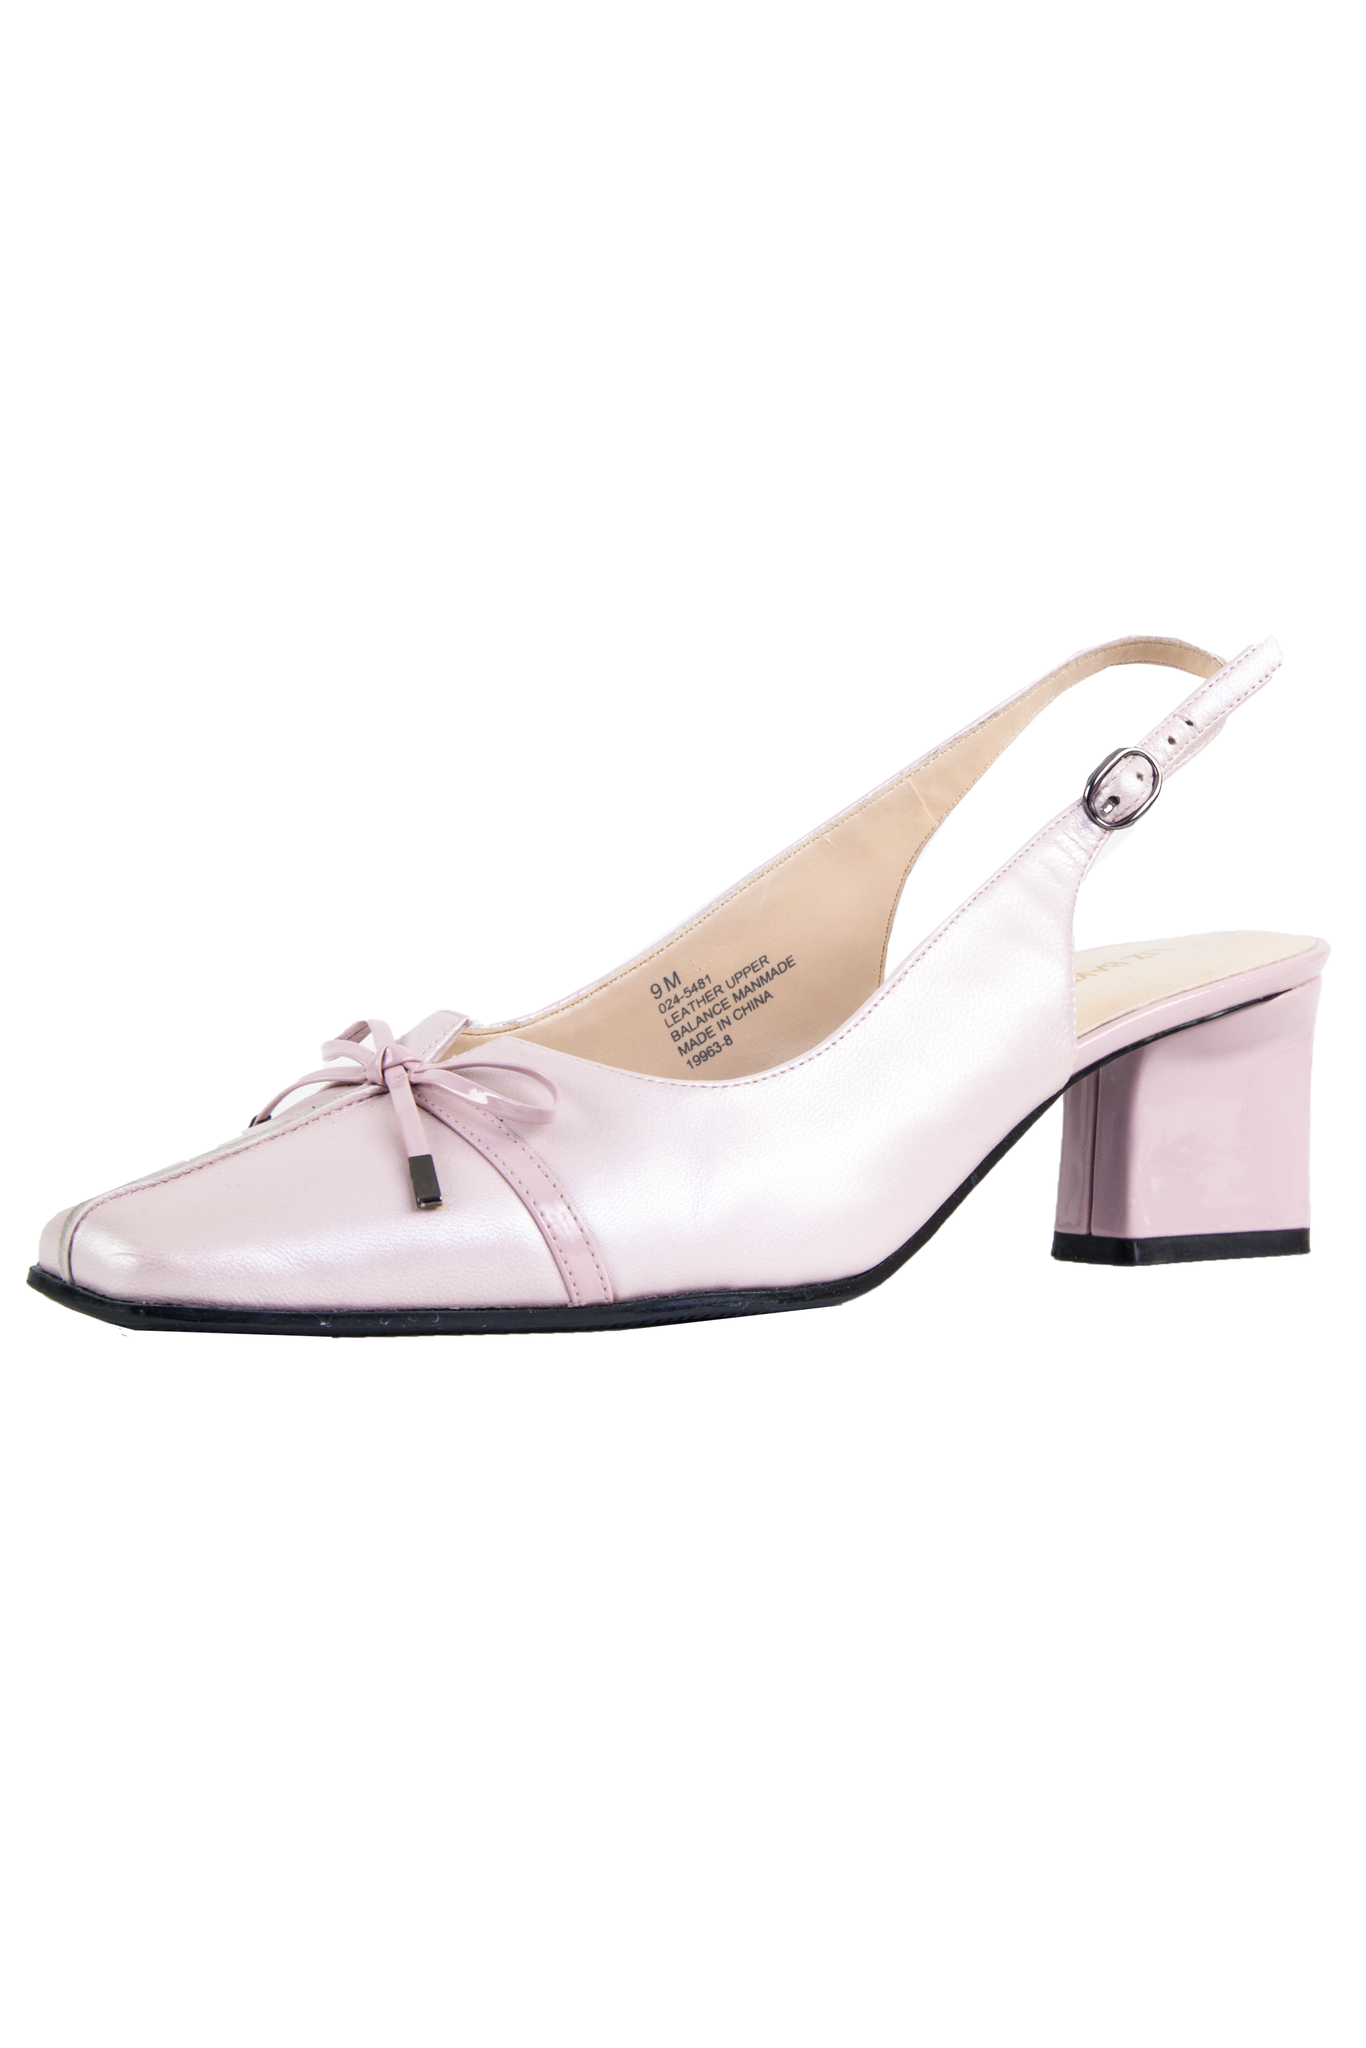 vintage pink pearl shoes with bow embellishment and slingback strap